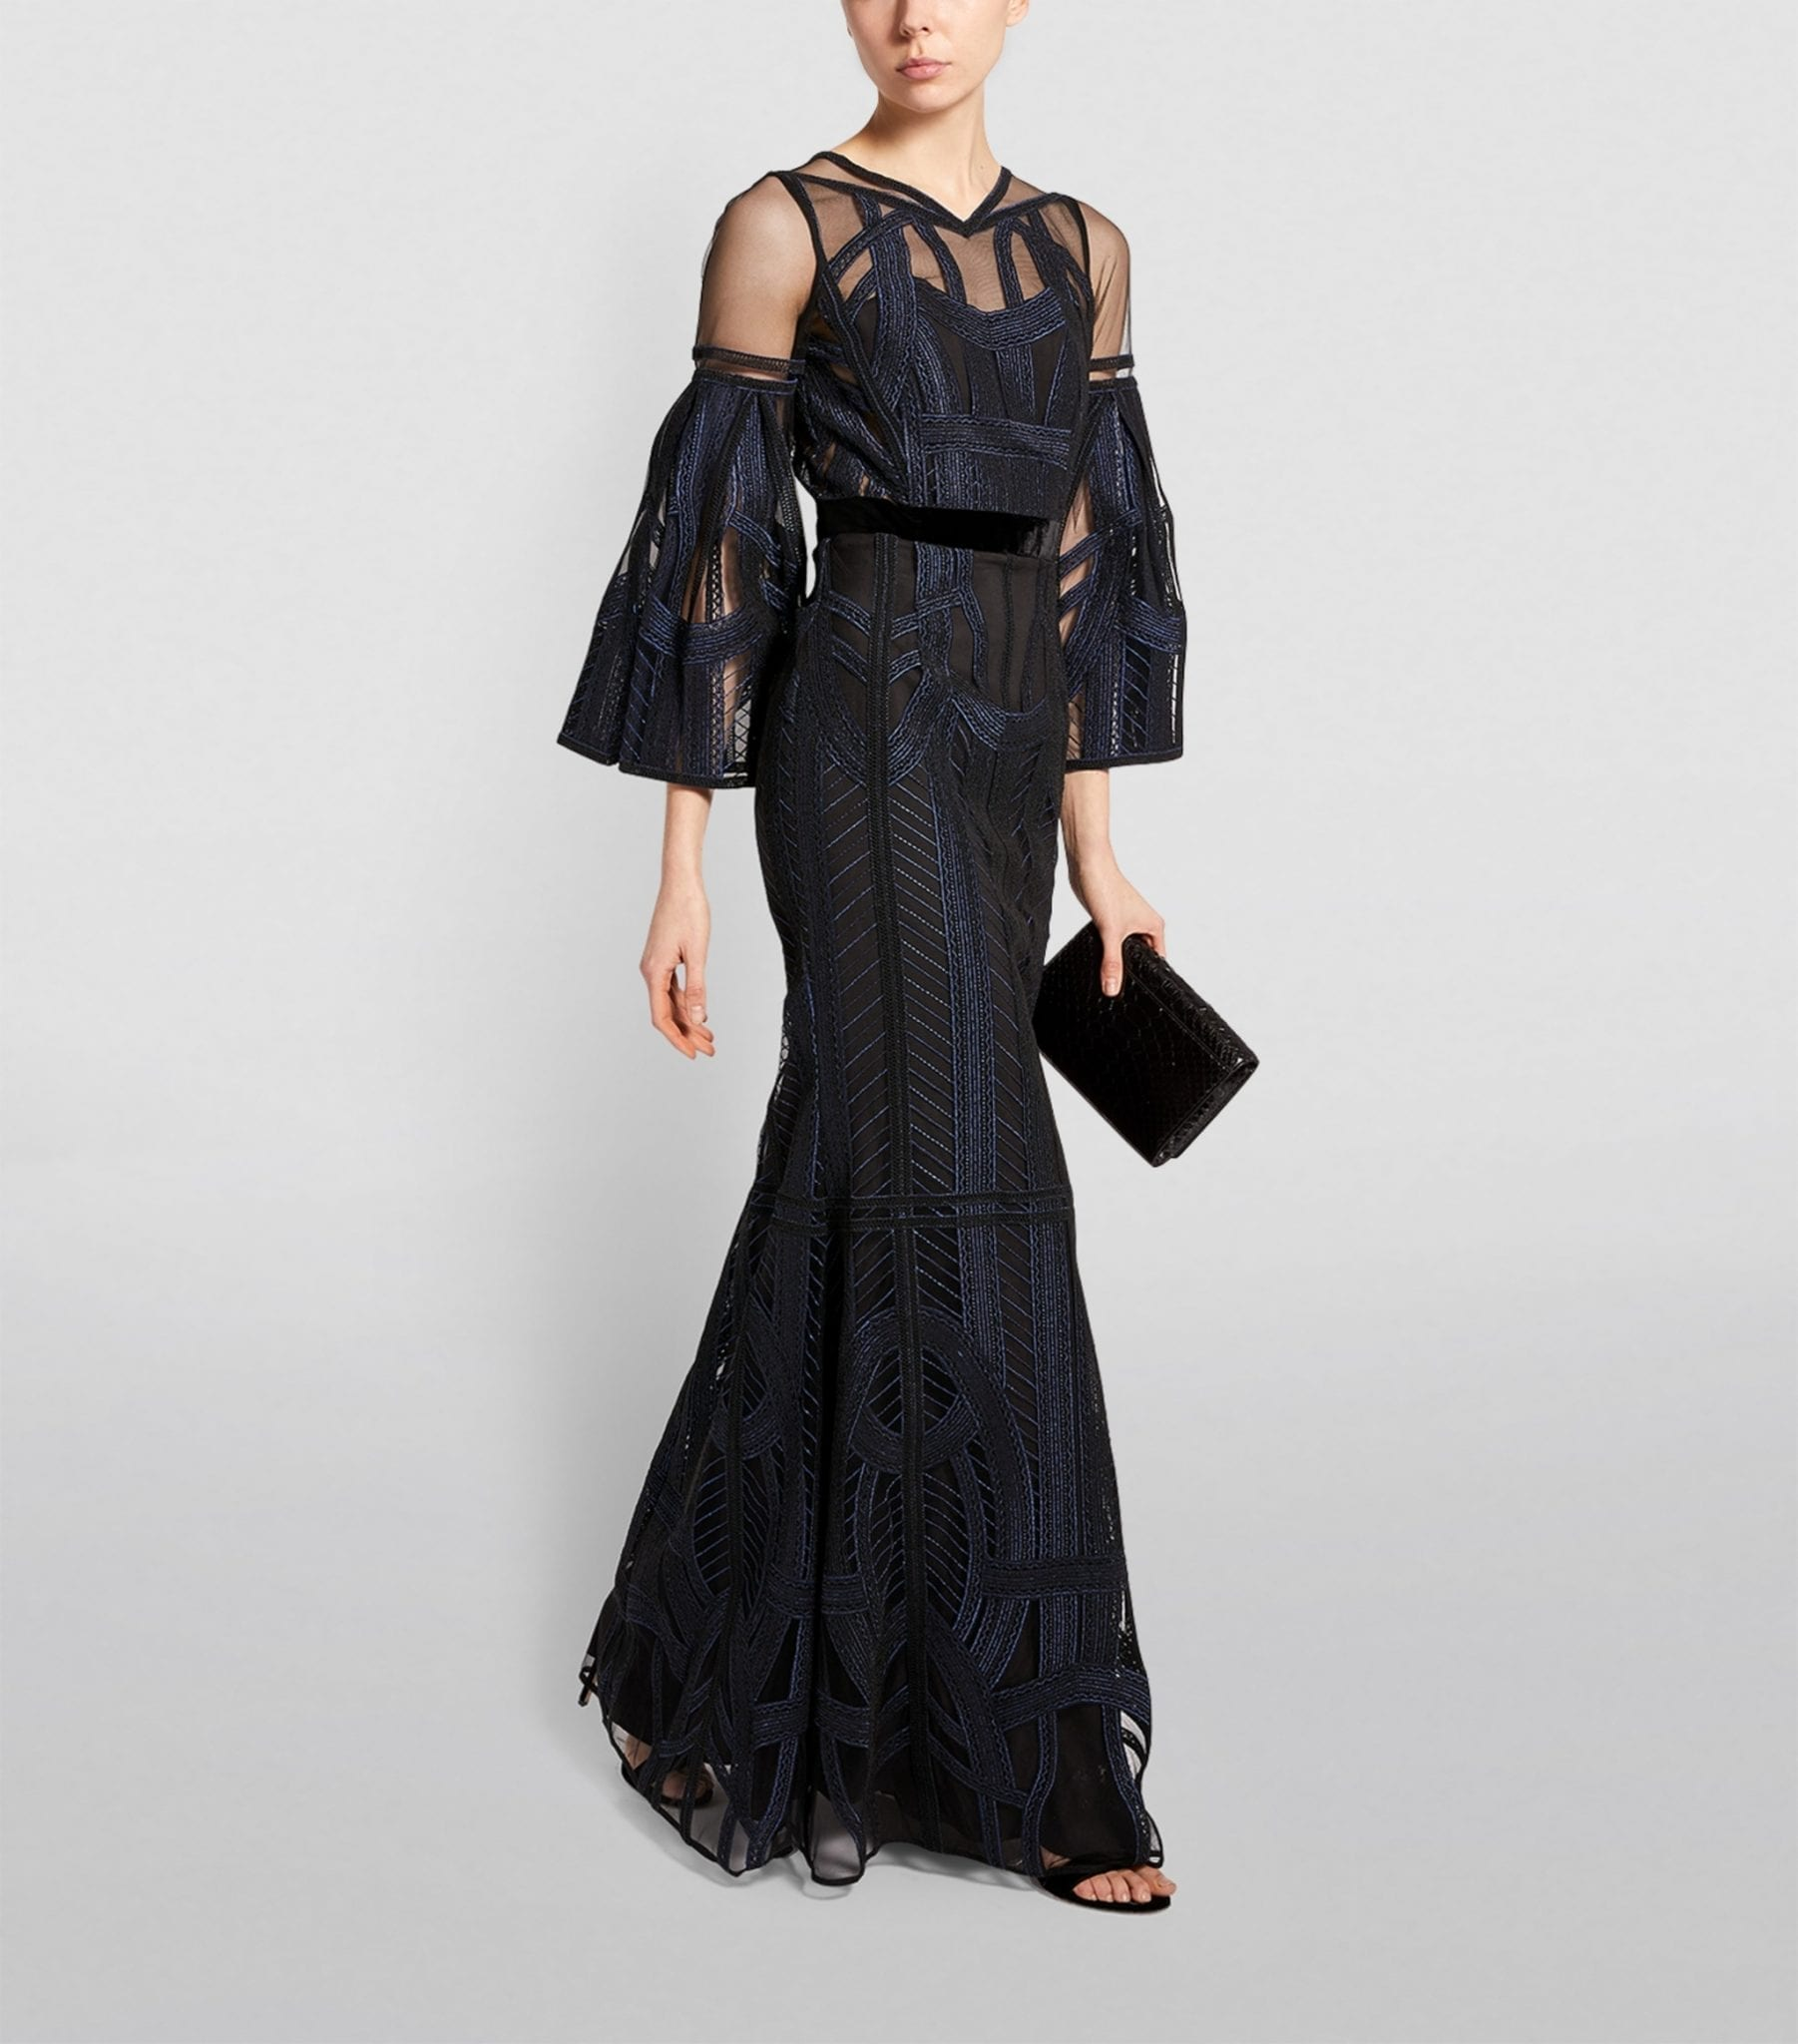 AMANDA WAKELEY Embroidered Maxi Dress